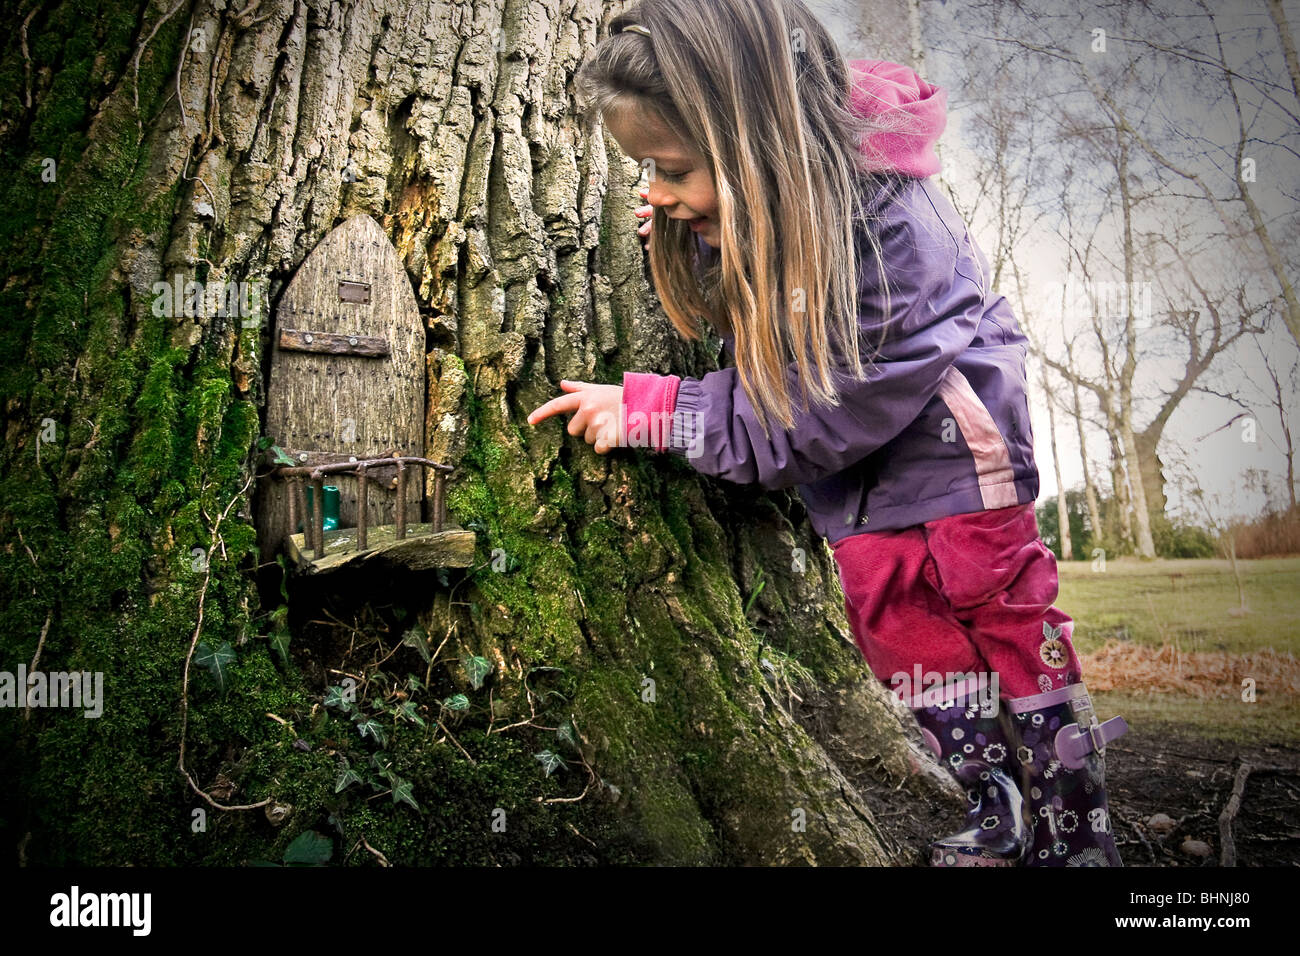 A Young Girl Discovers A Fairy Door In A Magical Woodland